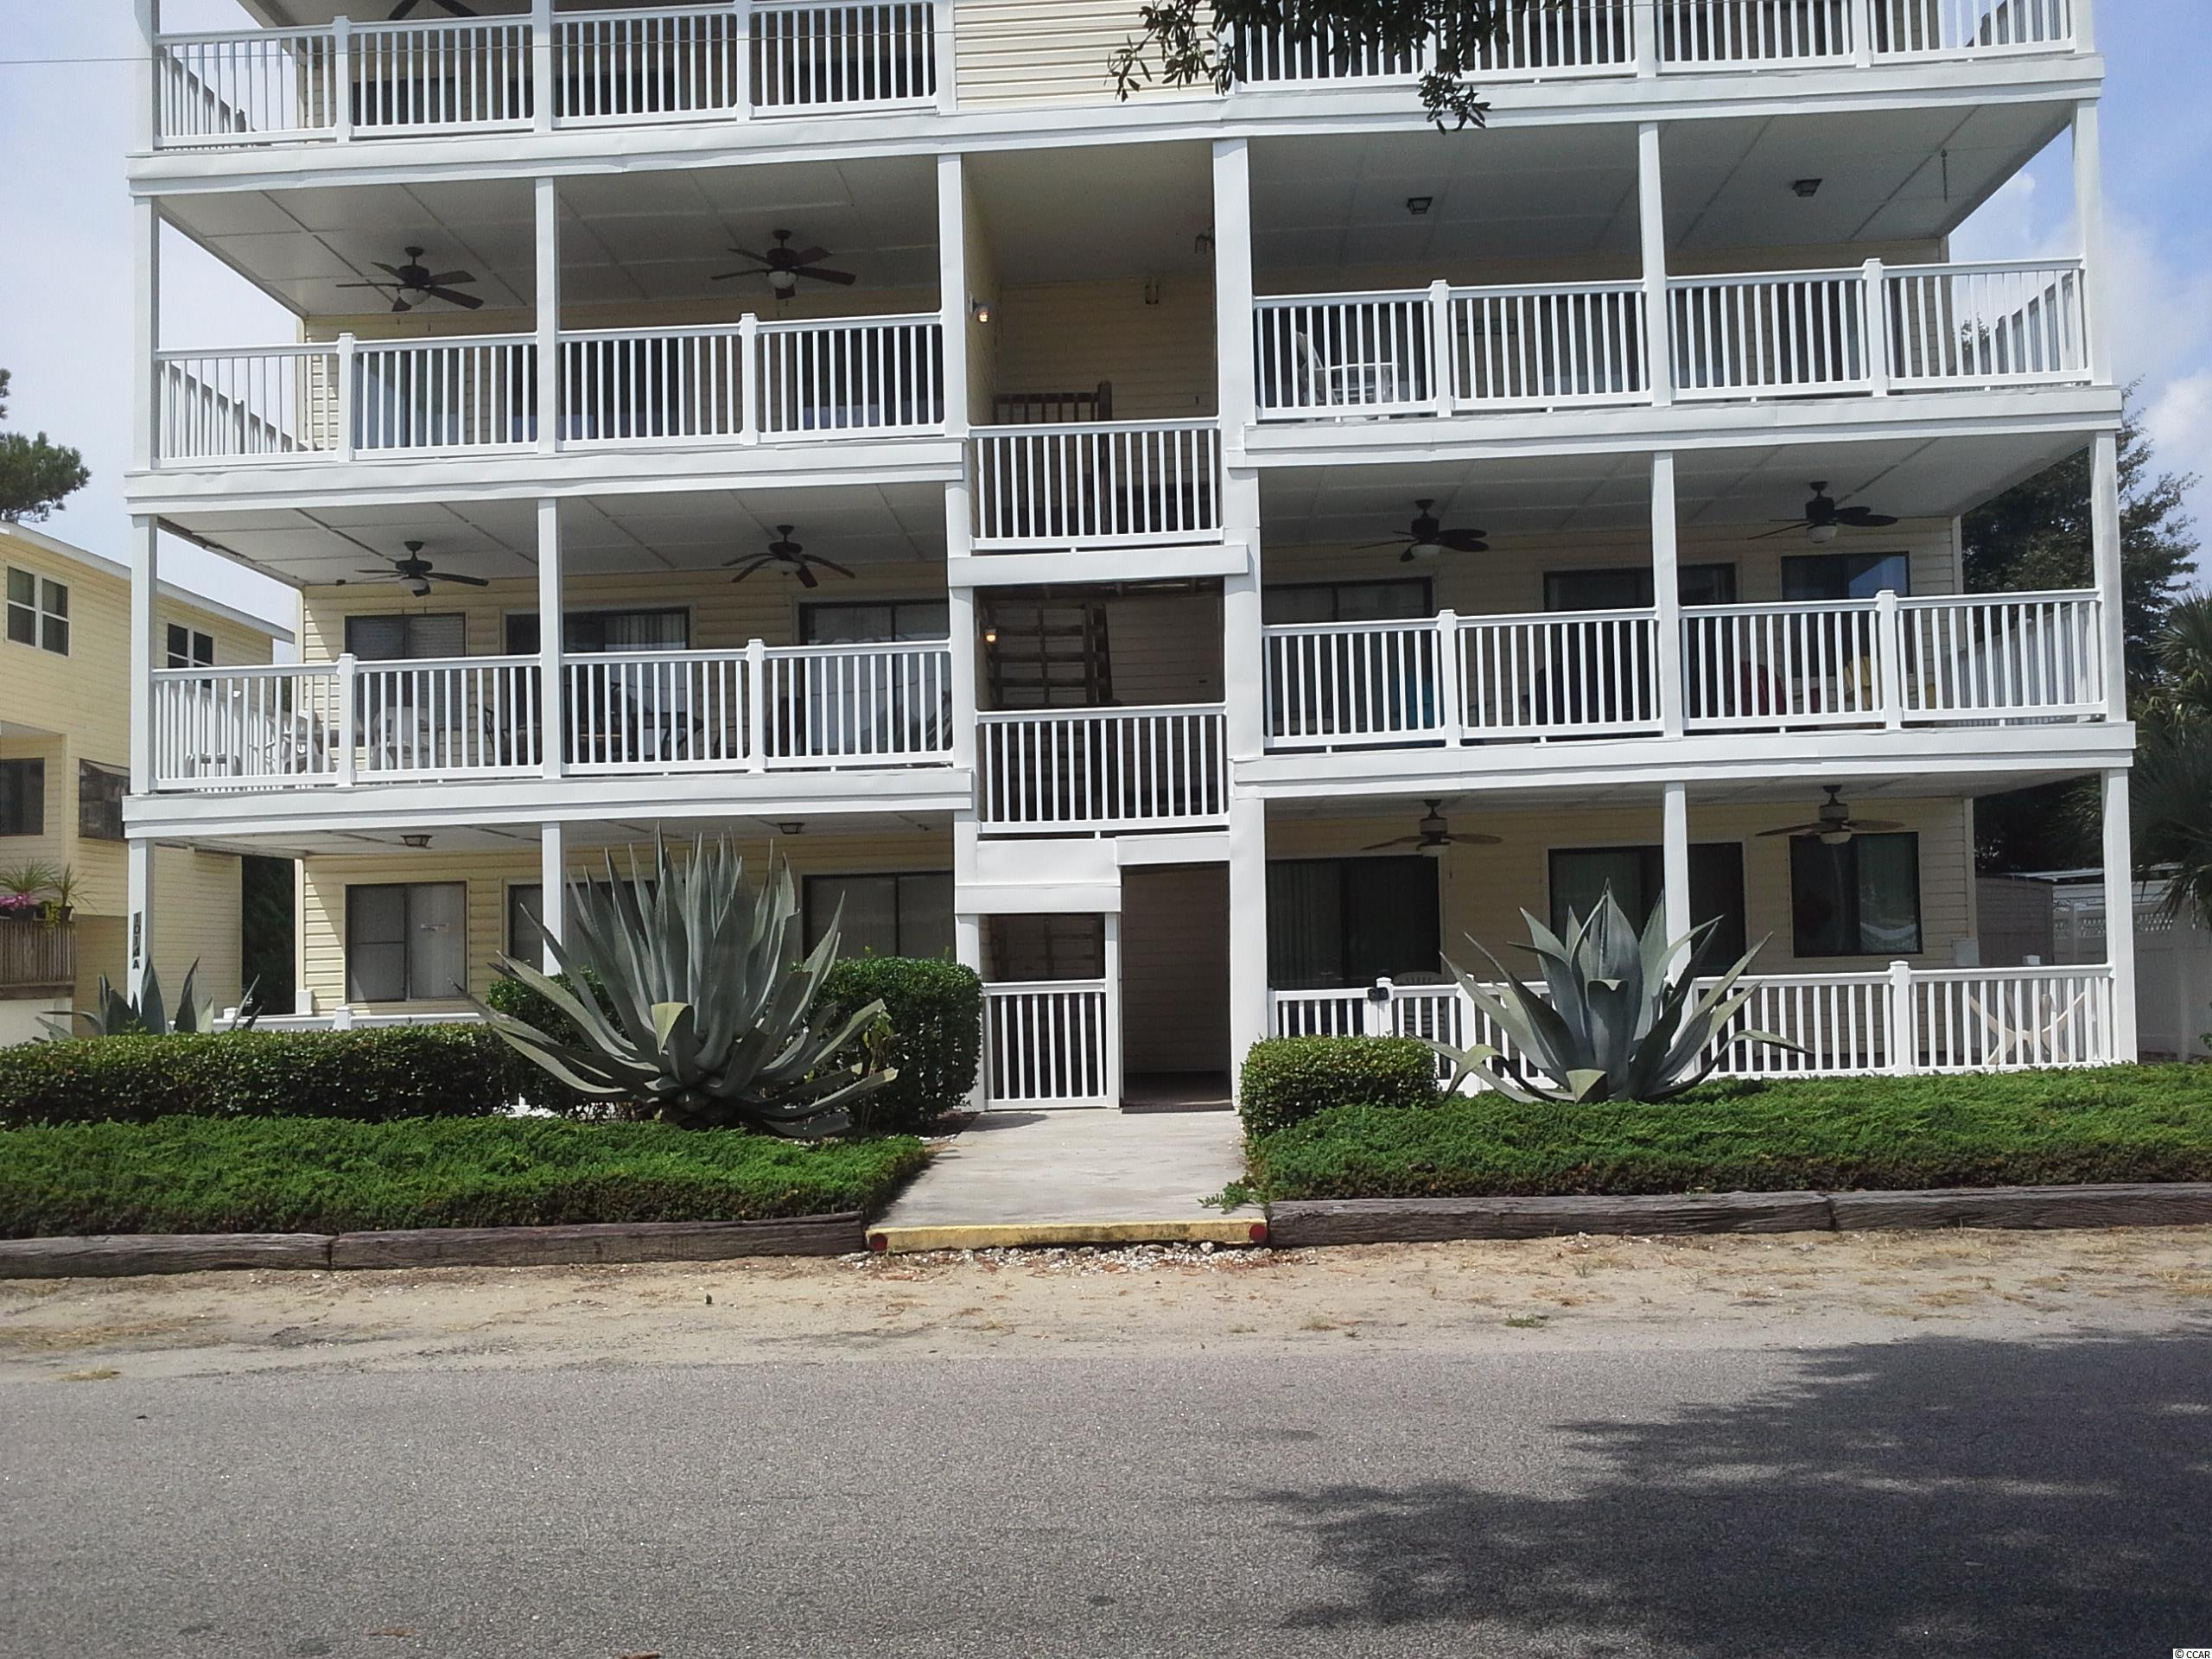 Convenient location in Surfside Beach with a short walk to the beach, restaurants, shopping and entertainment.  This well maintained 2 bedroom, 2 bath condo offers an open floor plan excellent for entertaining and family vacation time.  The large living area opens up to a huge balcony with ceiling fans for those warm days or nights. The balcony is perfect for dining or just having that morning coffee while enjoying the ocean breeze.   A must see!!